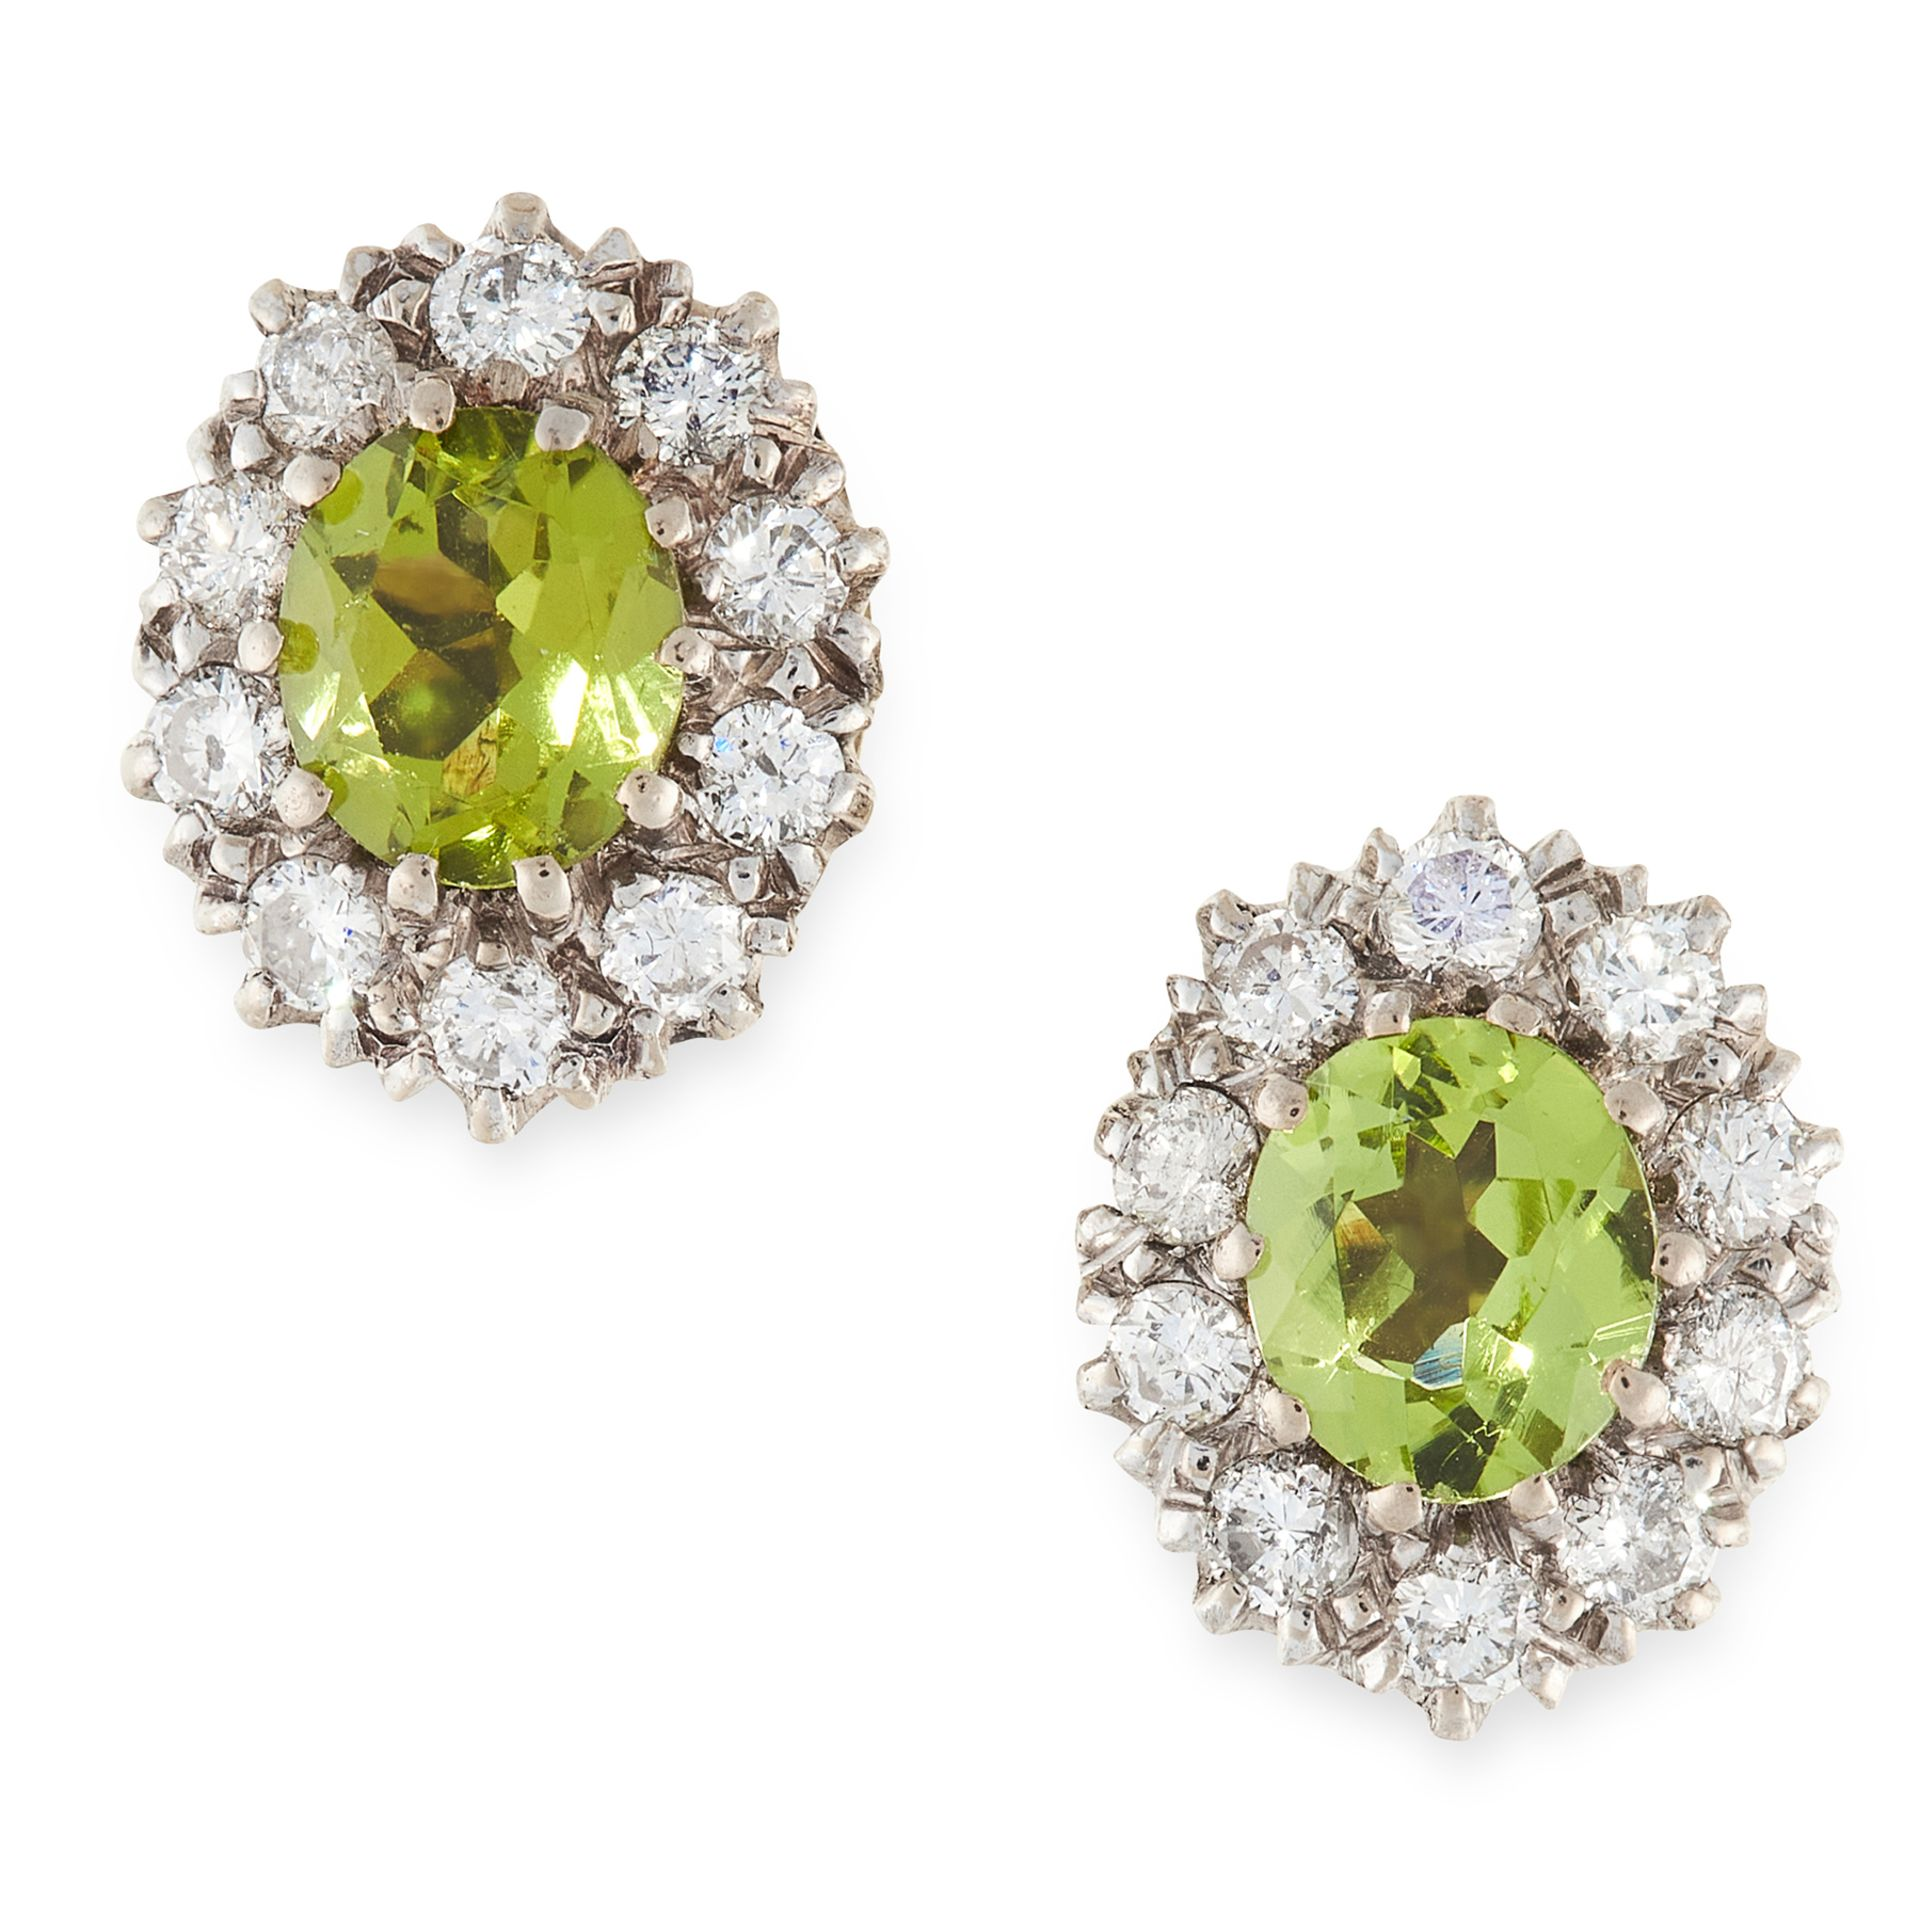 A PAIR OF PERIDOT AND DIAMOND CLUSTER EARRINGS in yellow gold, each set with an oval cut peridot